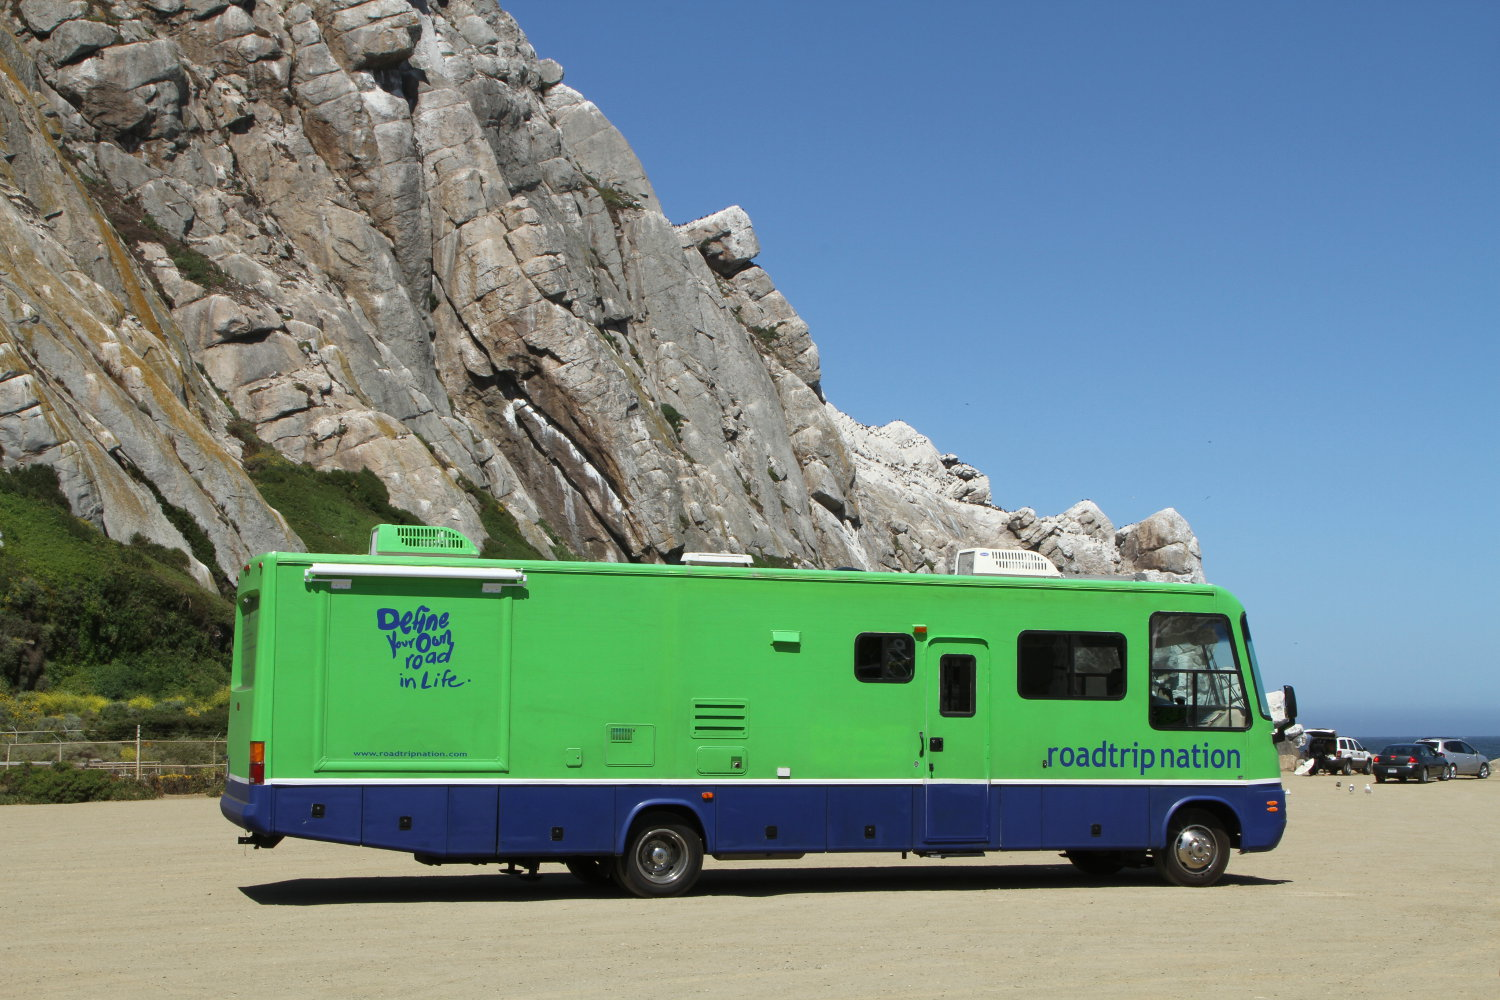 Roadtrip Nation's Green RV 'Ellie'